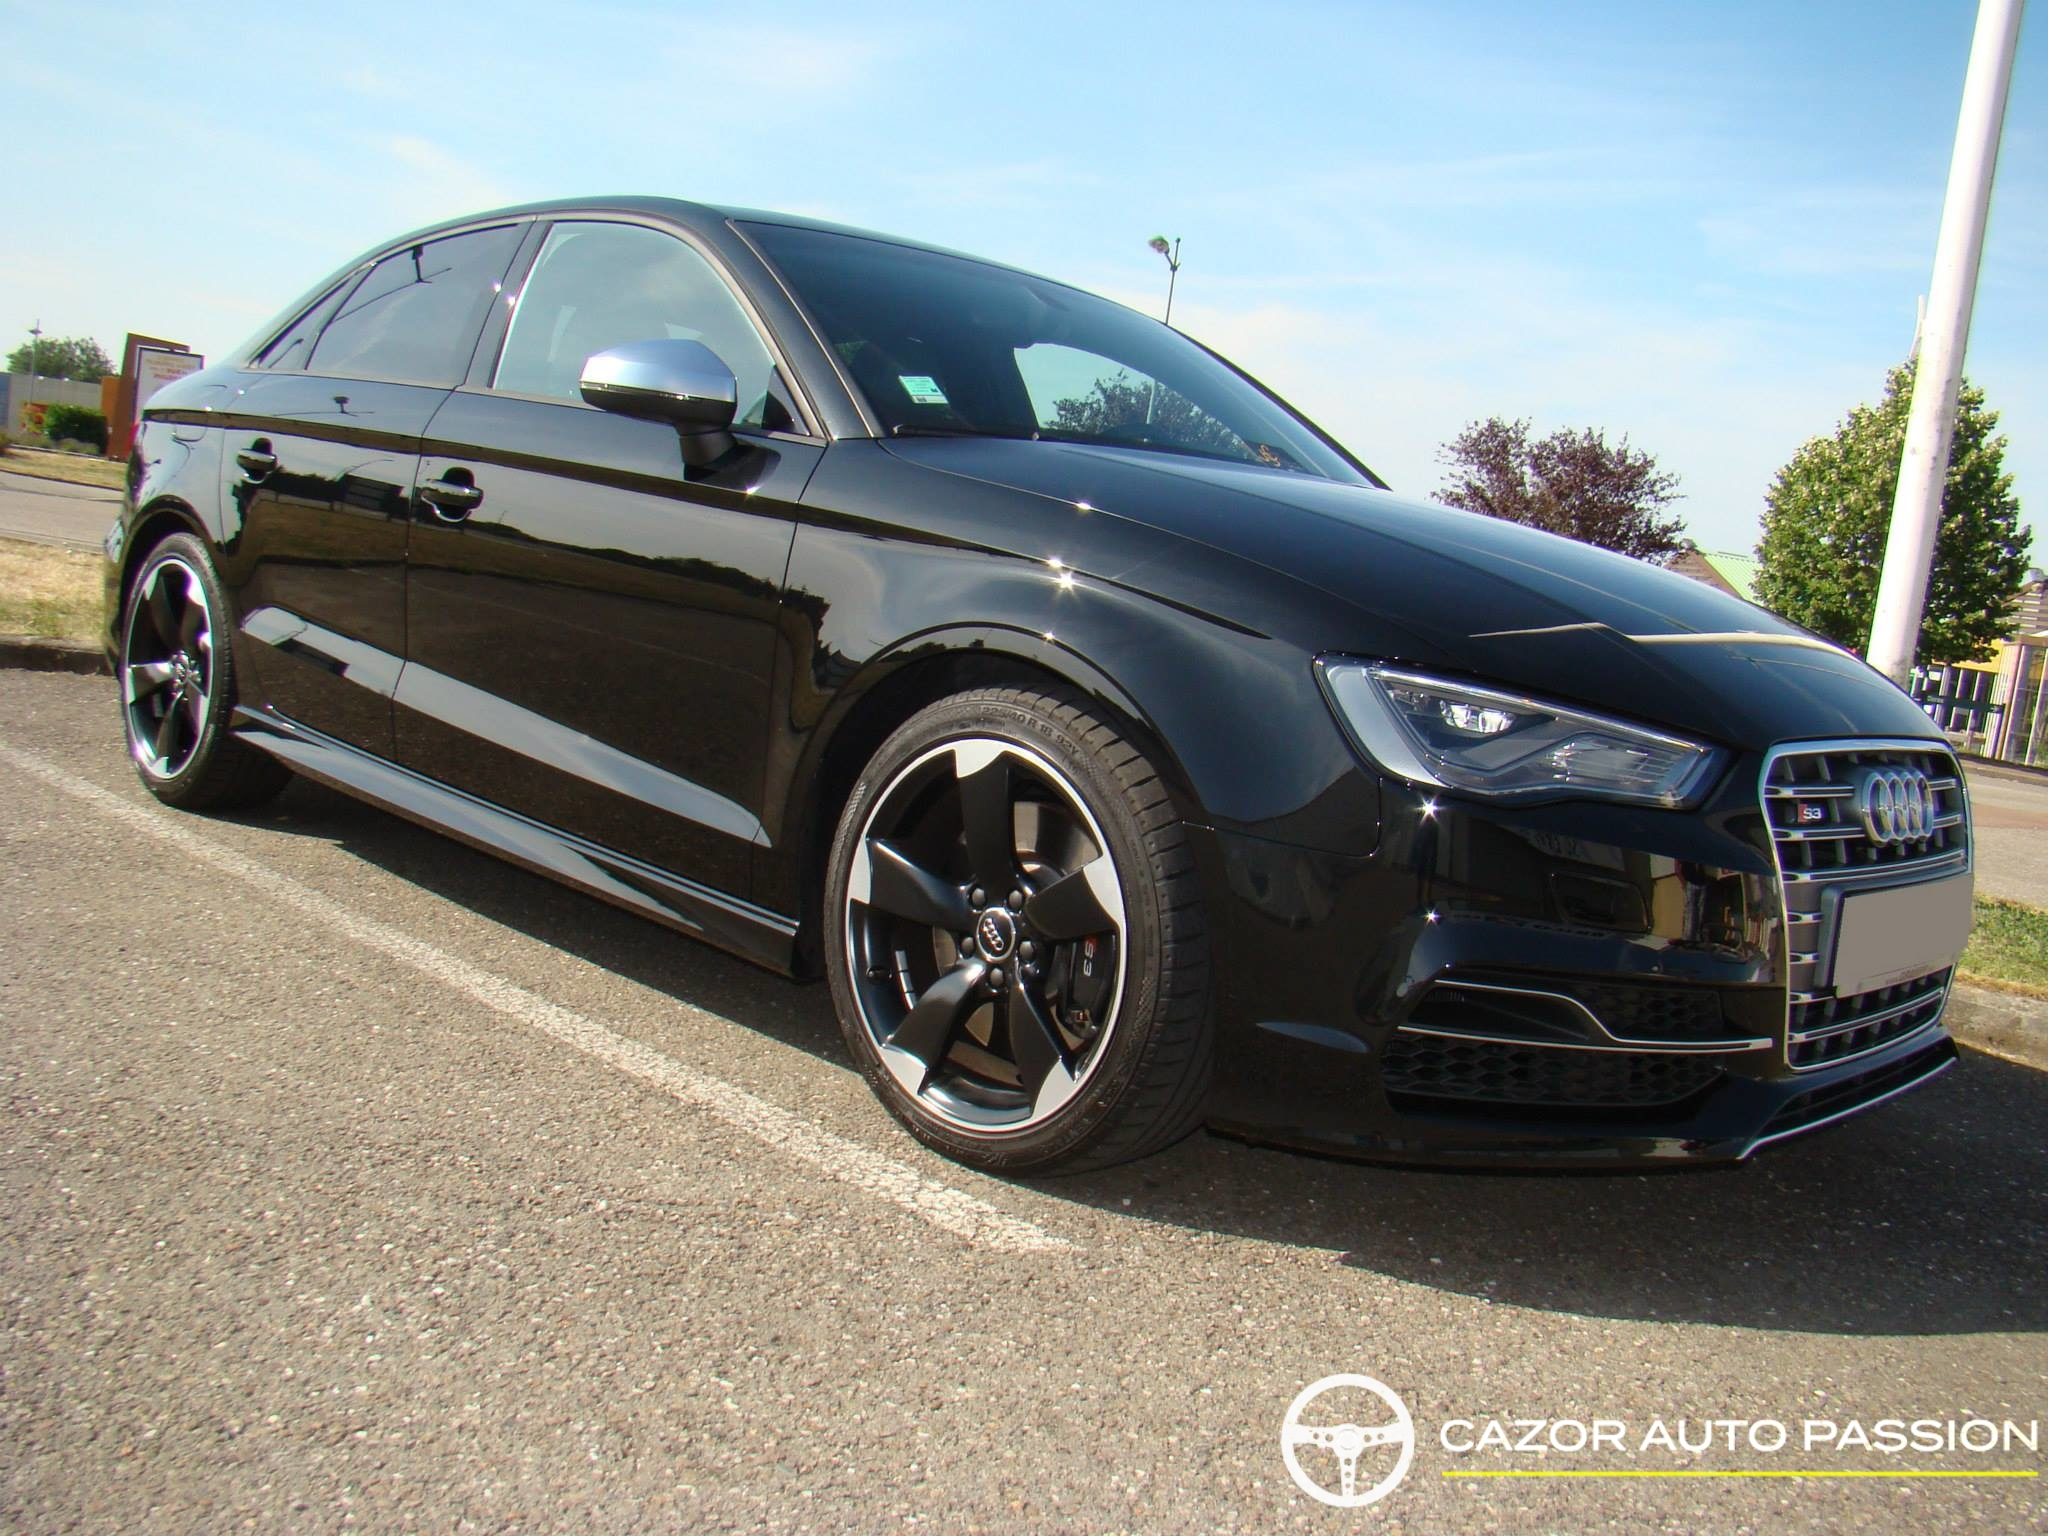 audi s3 berline s tronic 07 2014 17000km cazor auto passion. Black Bedroom Furniture Sets. Home Design Ideas